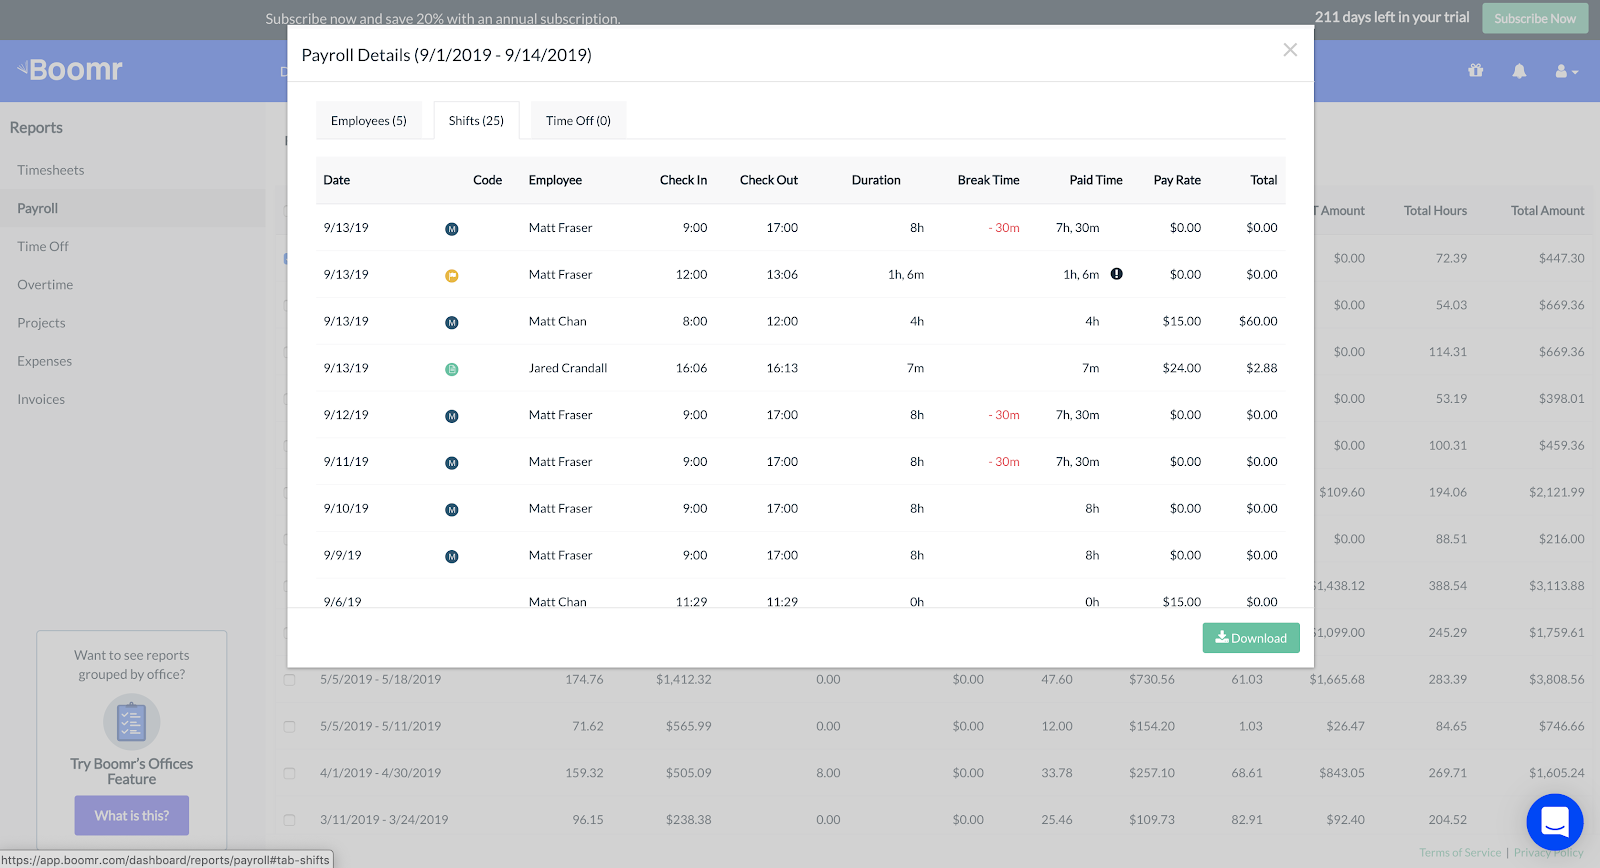 Screenshot showing how to view a Payroll Detail report of each shift for the pay period